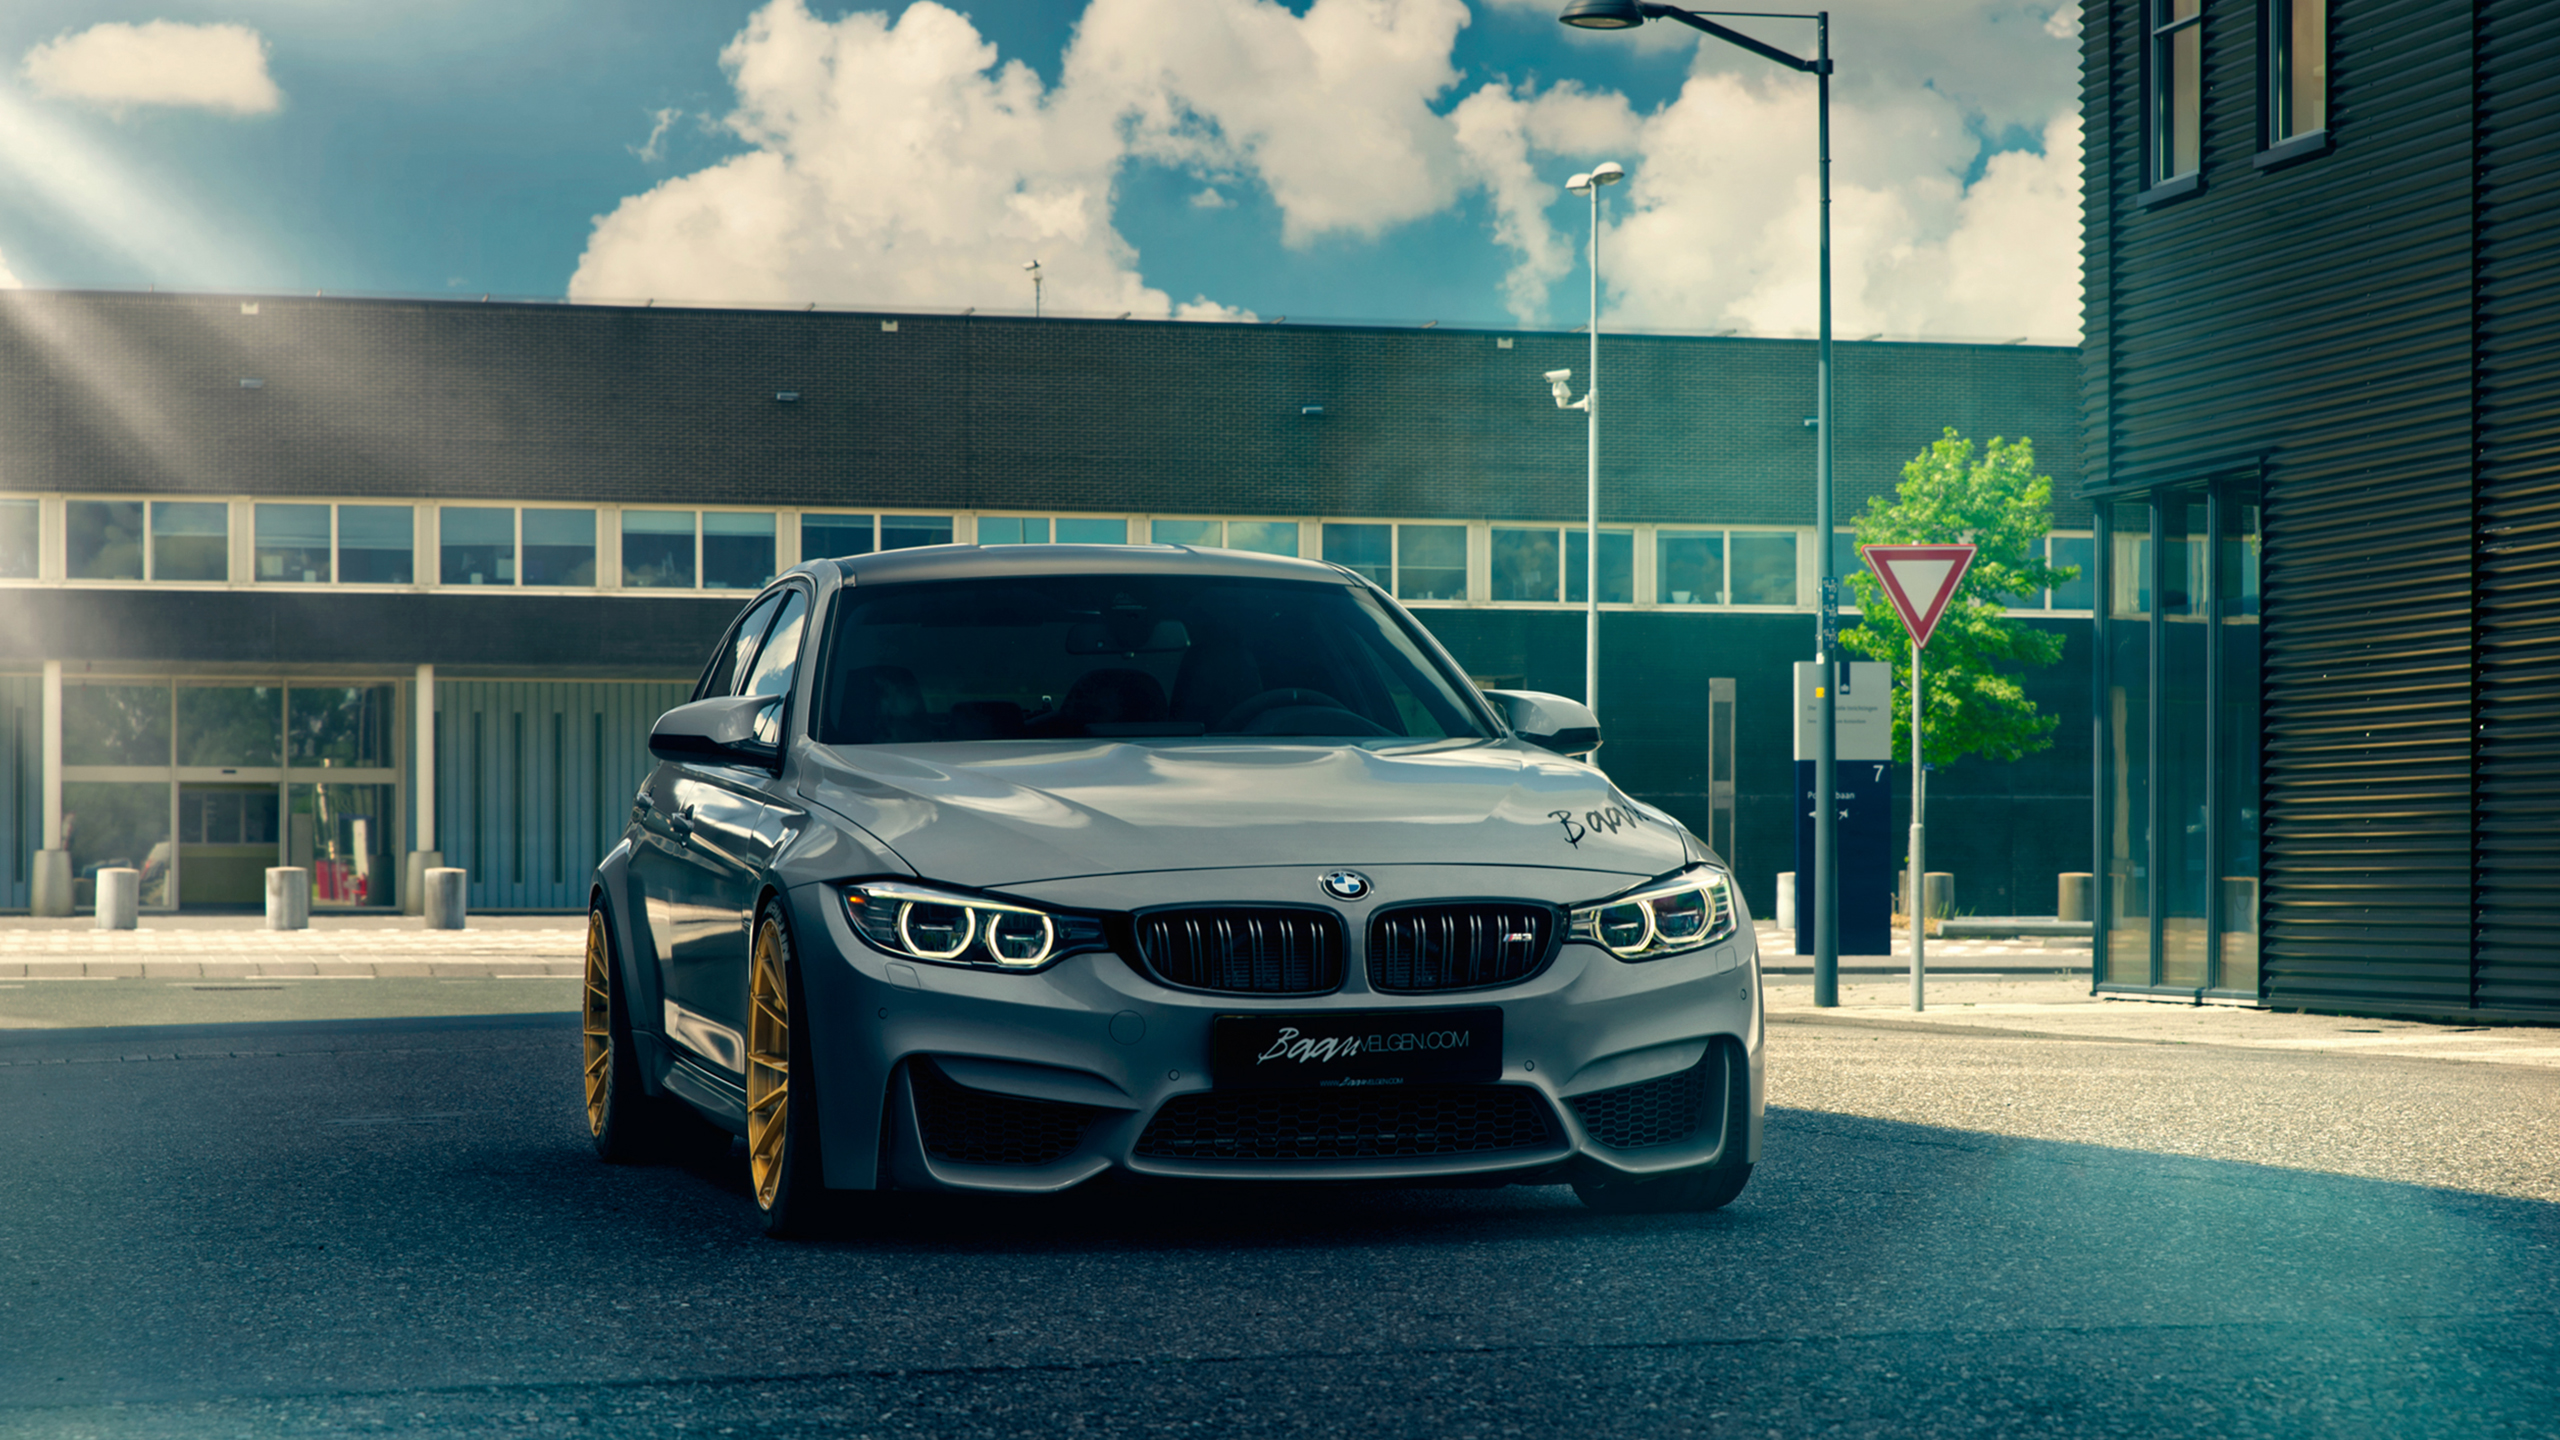 Bmw M3 F80 Wallpaper 4k 2940309 Hd Wallpaper Backgrounds Download